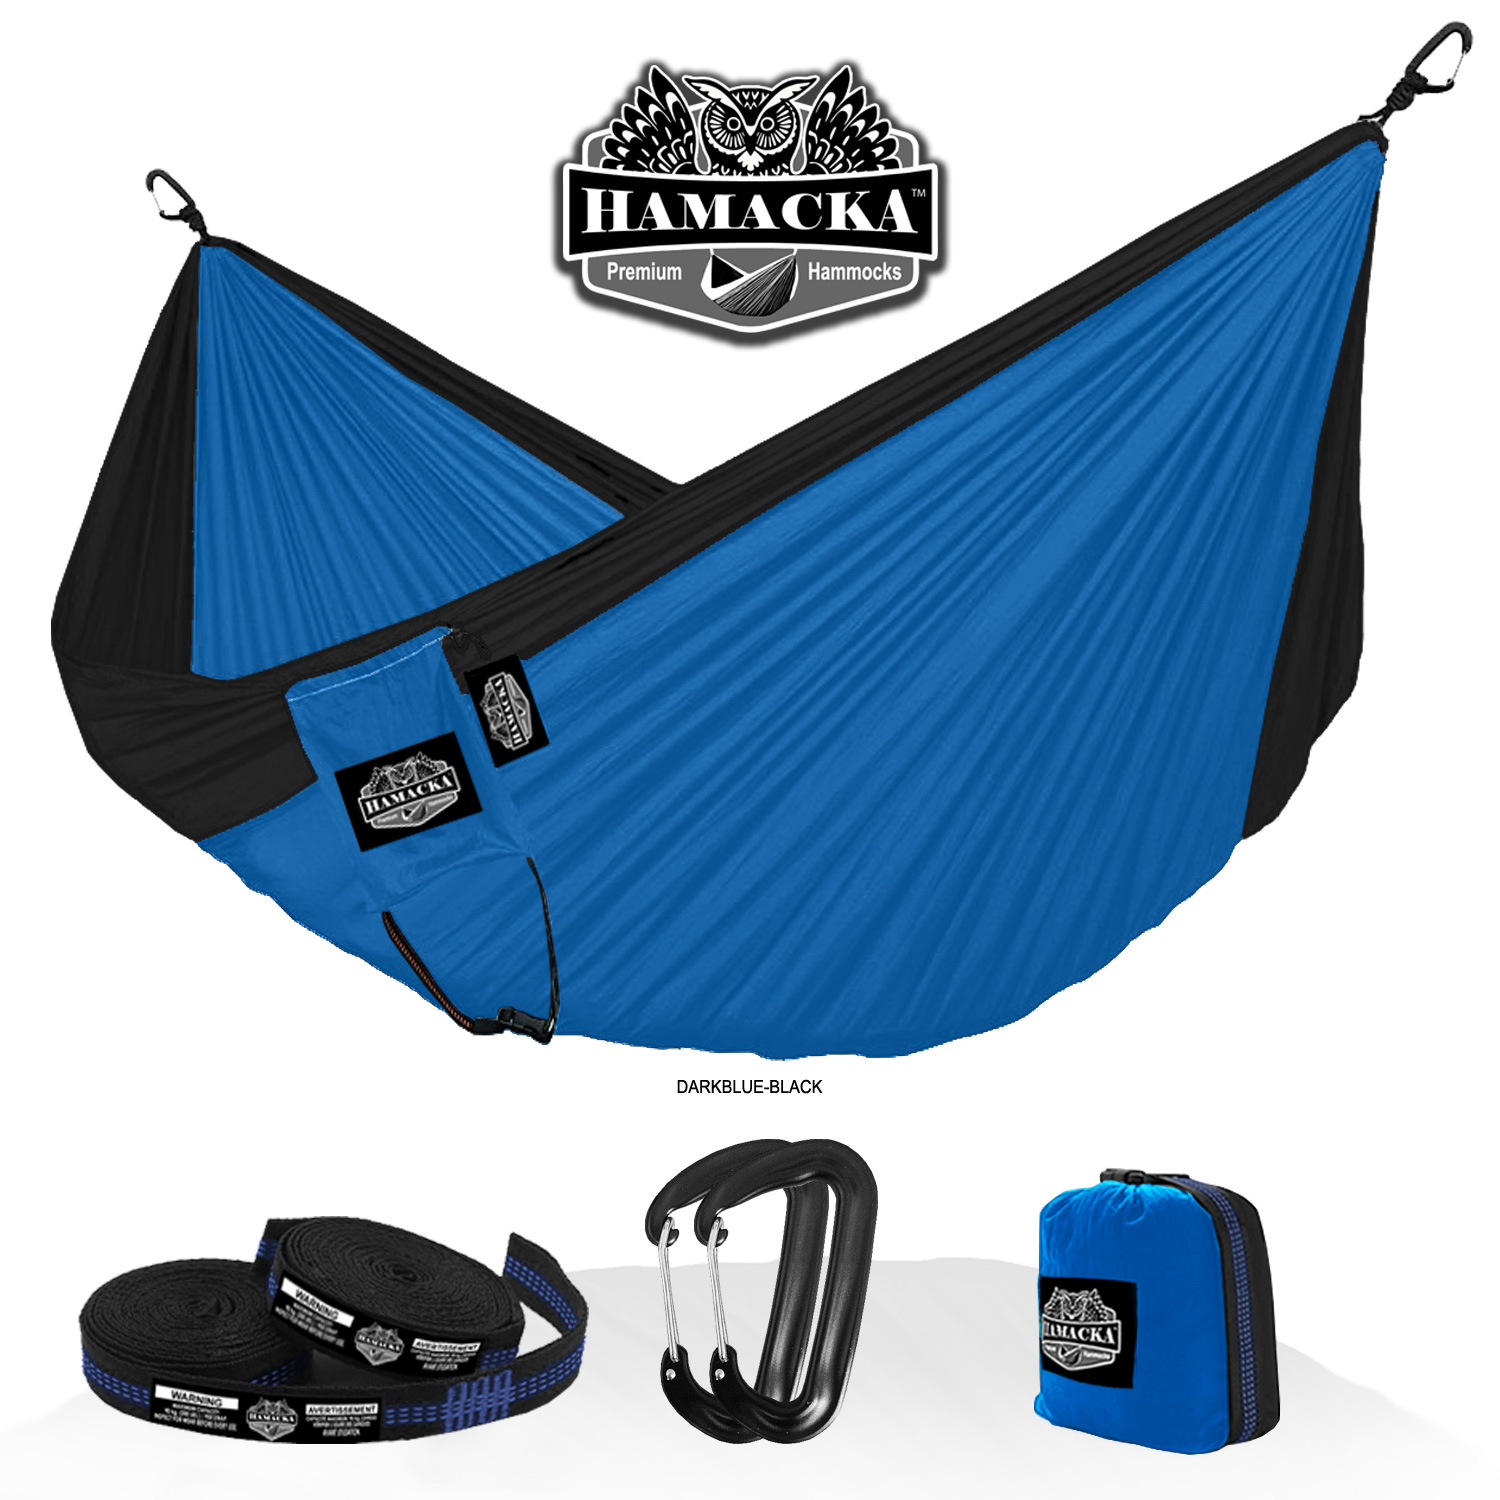 TRAVEL HAMMOCK SET (DARK-BLUE)